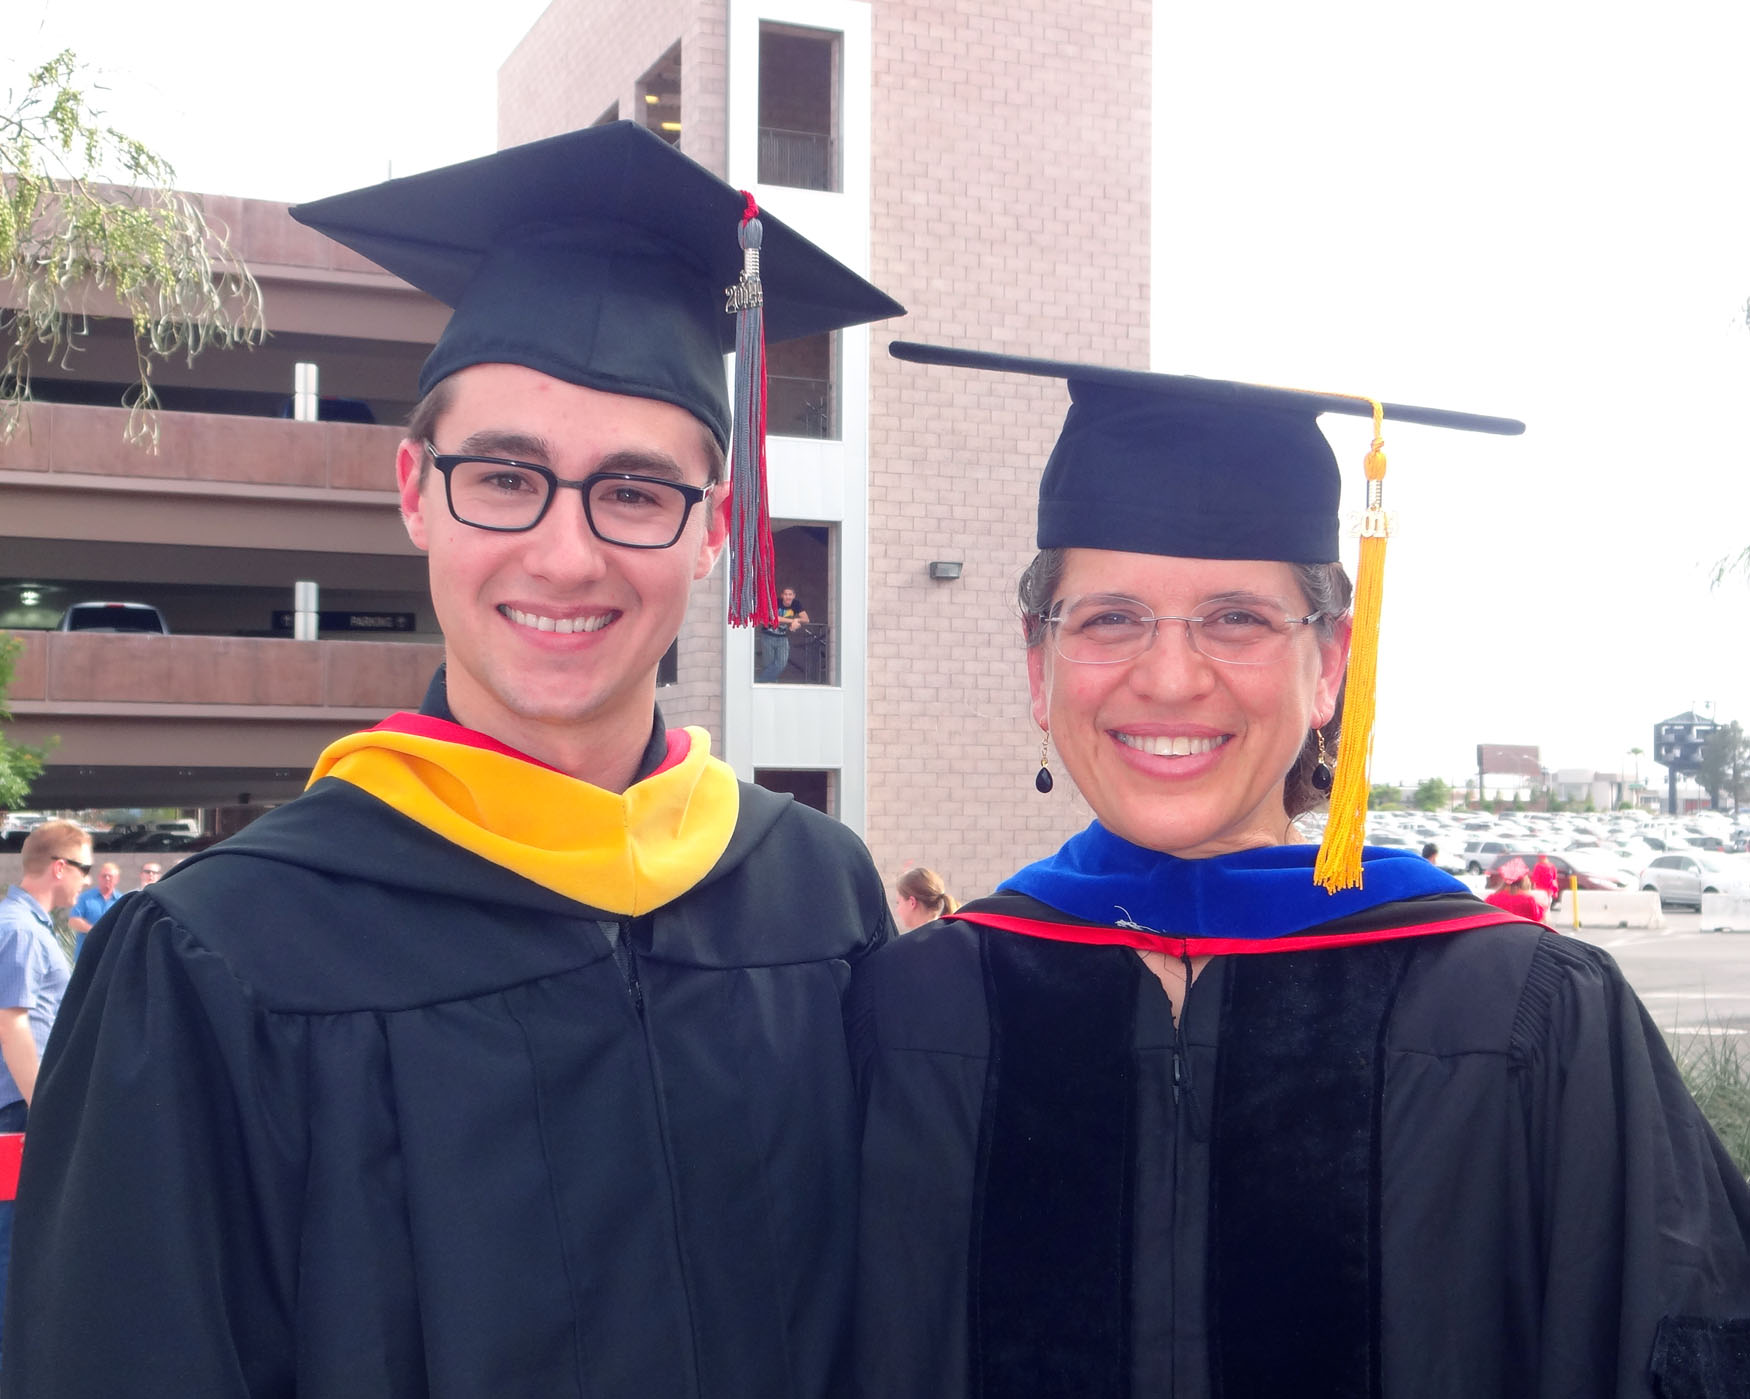 chris at graduation june 2014(improved-small) (2)